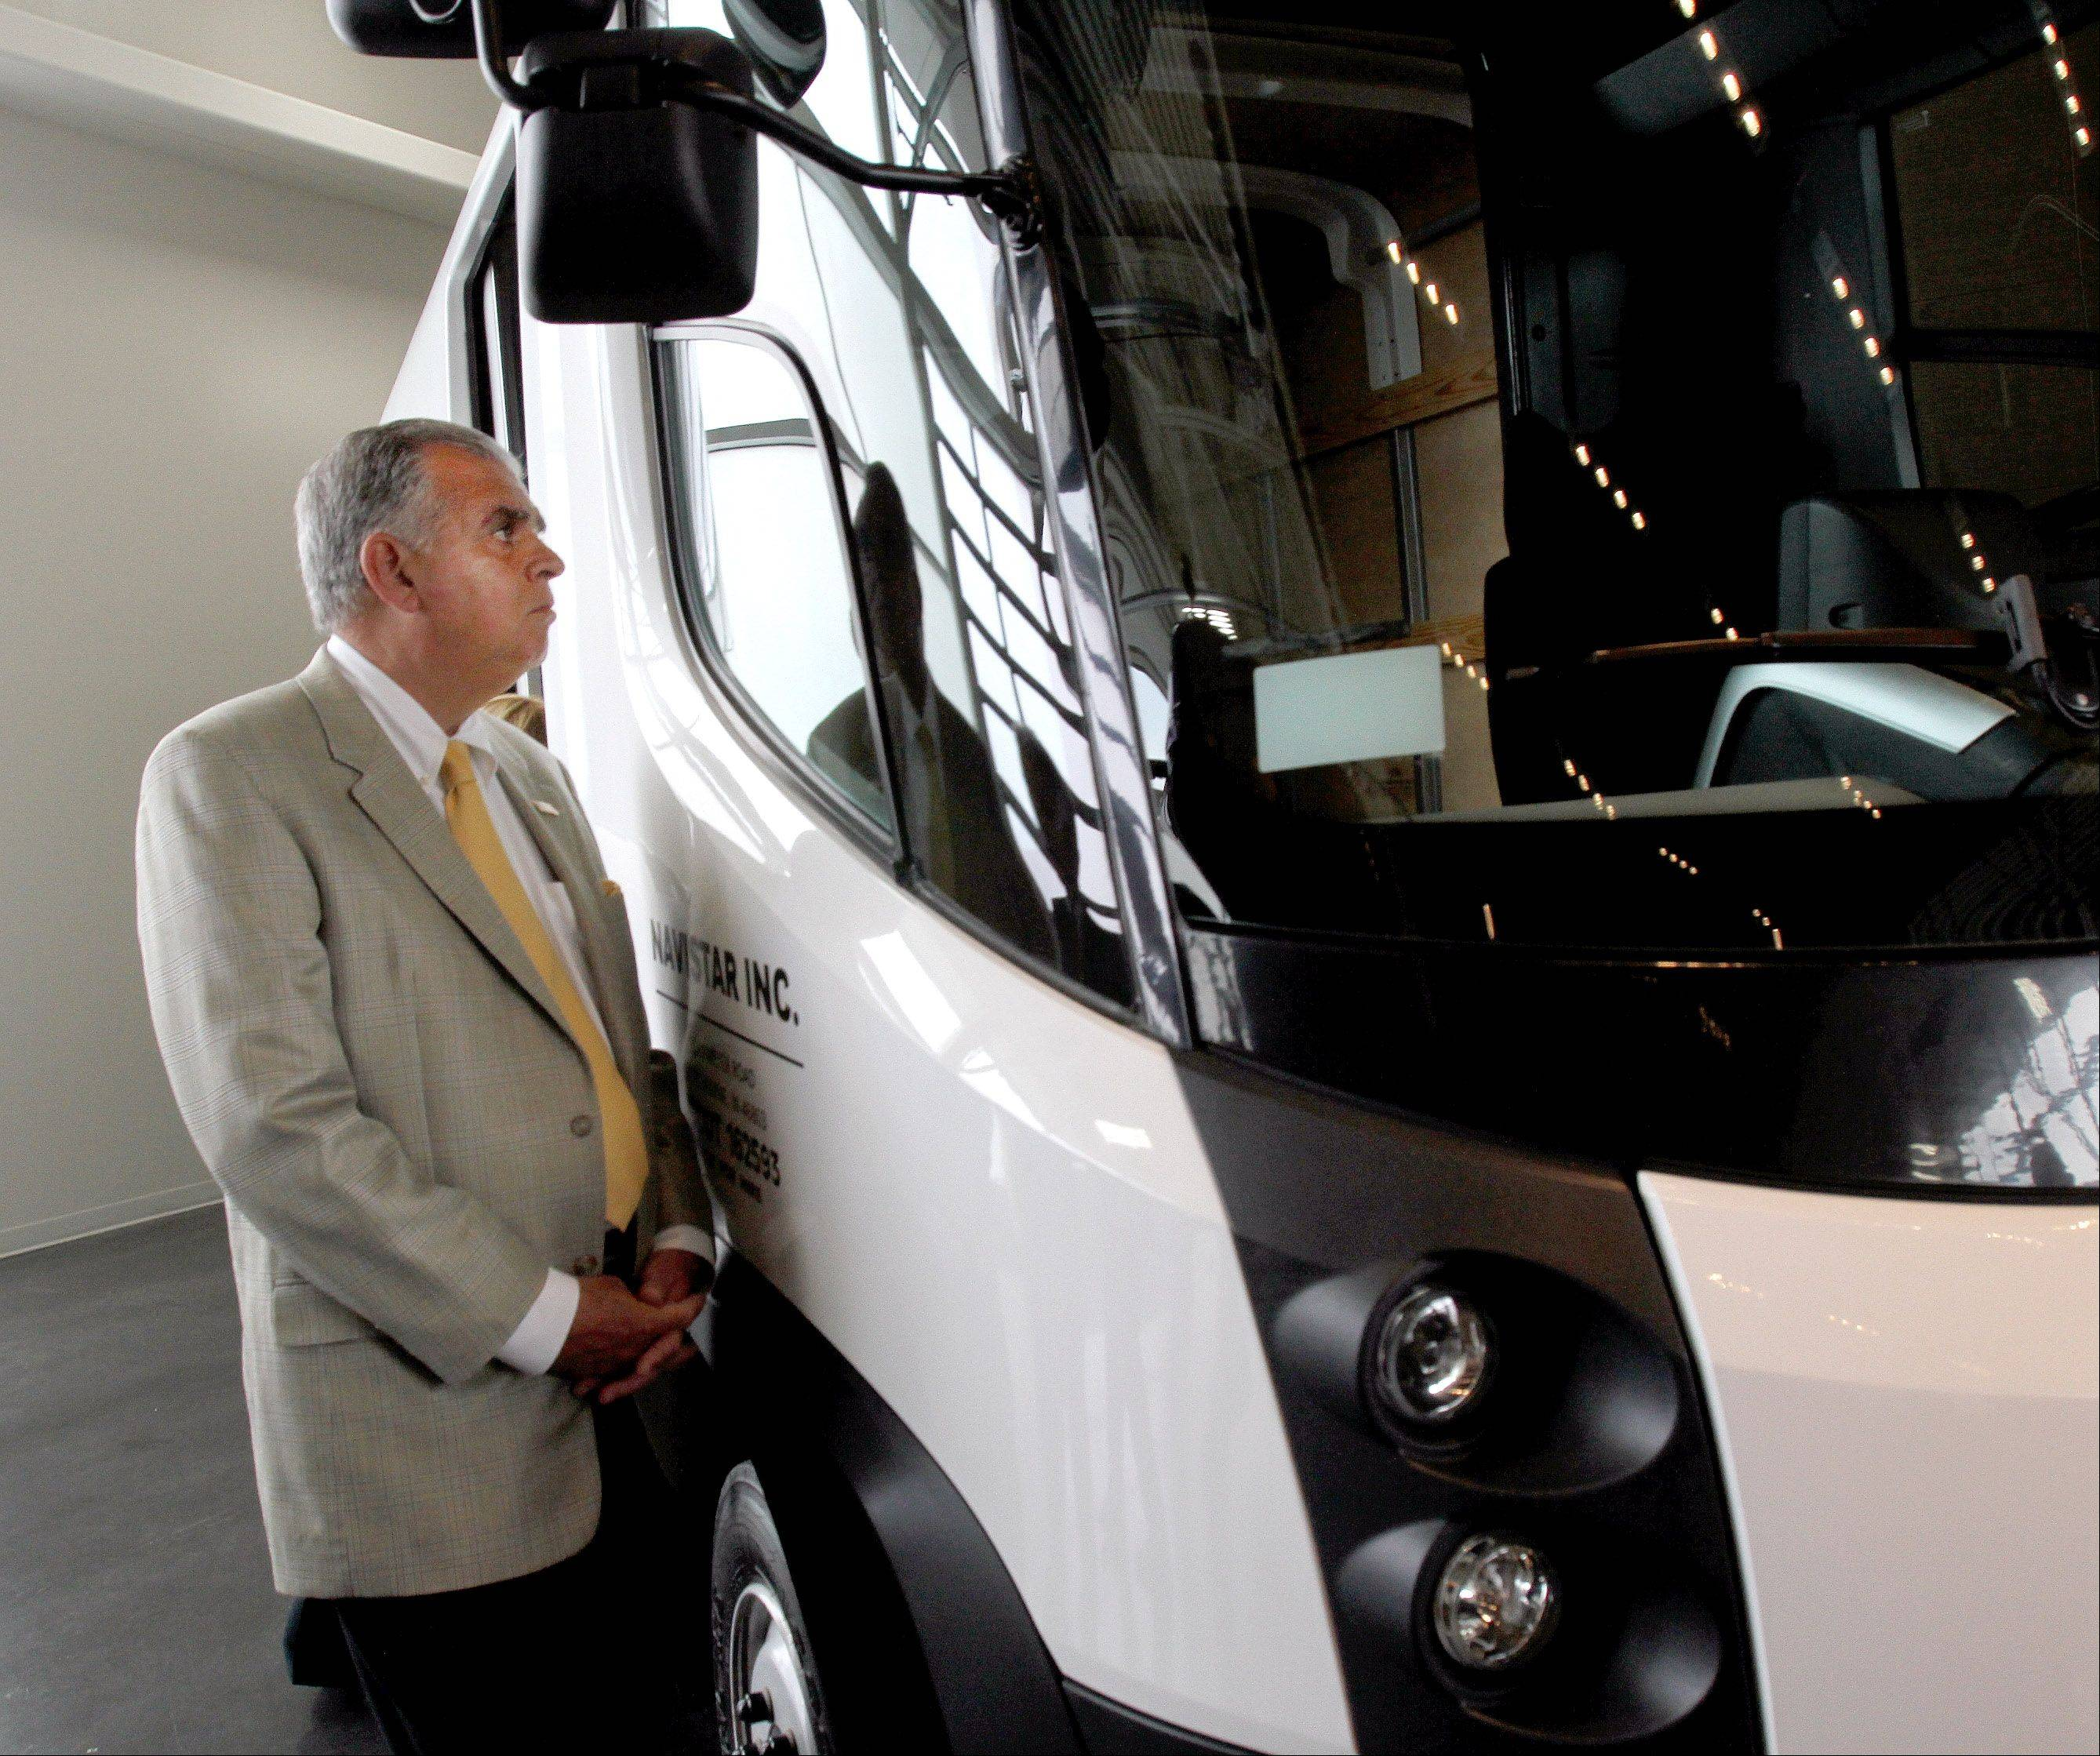 U.S. Transportation Secretary Ray LaHood takes a look inside an electric van during a visit to Navistar in Lisle on Monday.